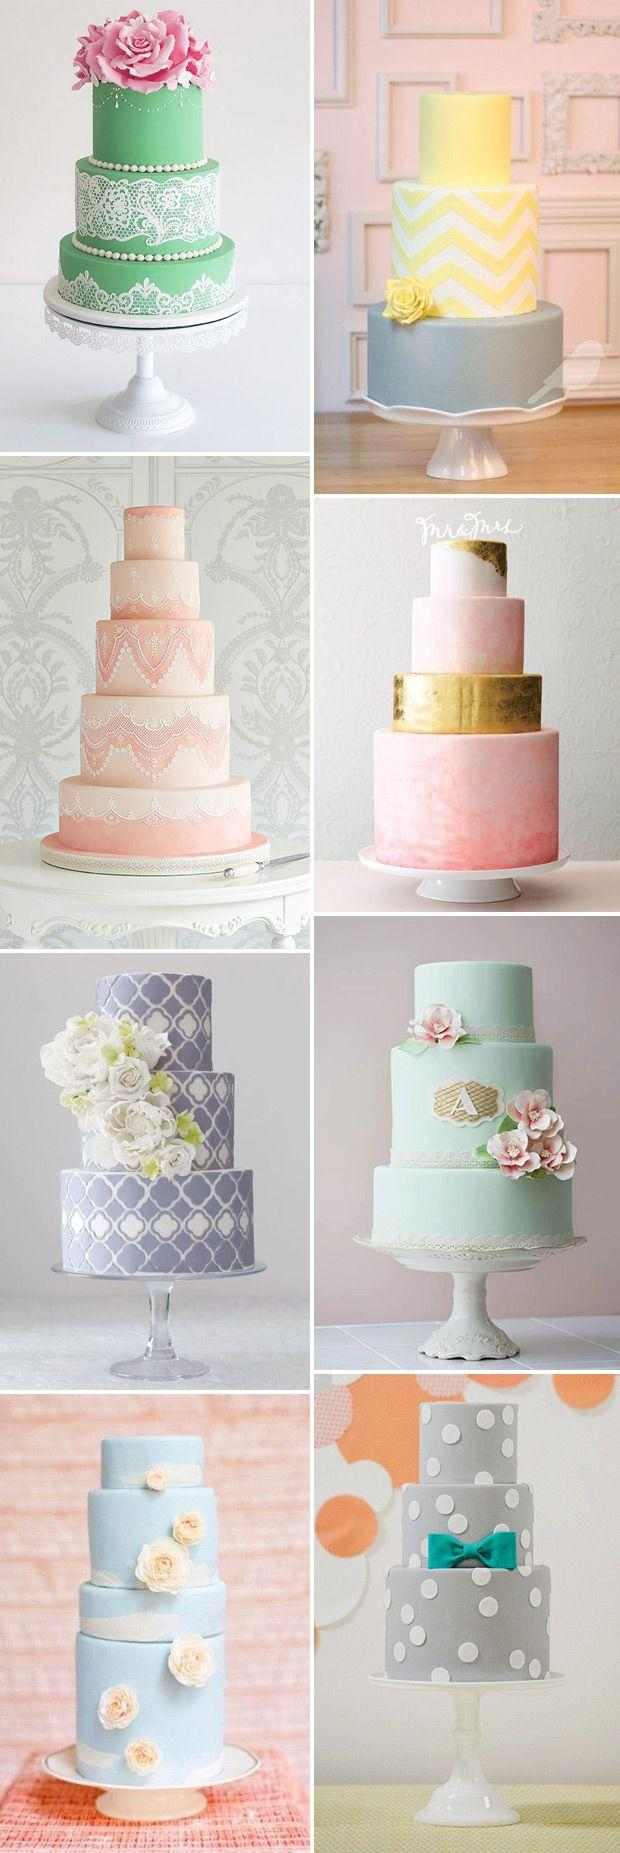 زفاف - Colourful Wedding Cakes Are So Hot Right Now